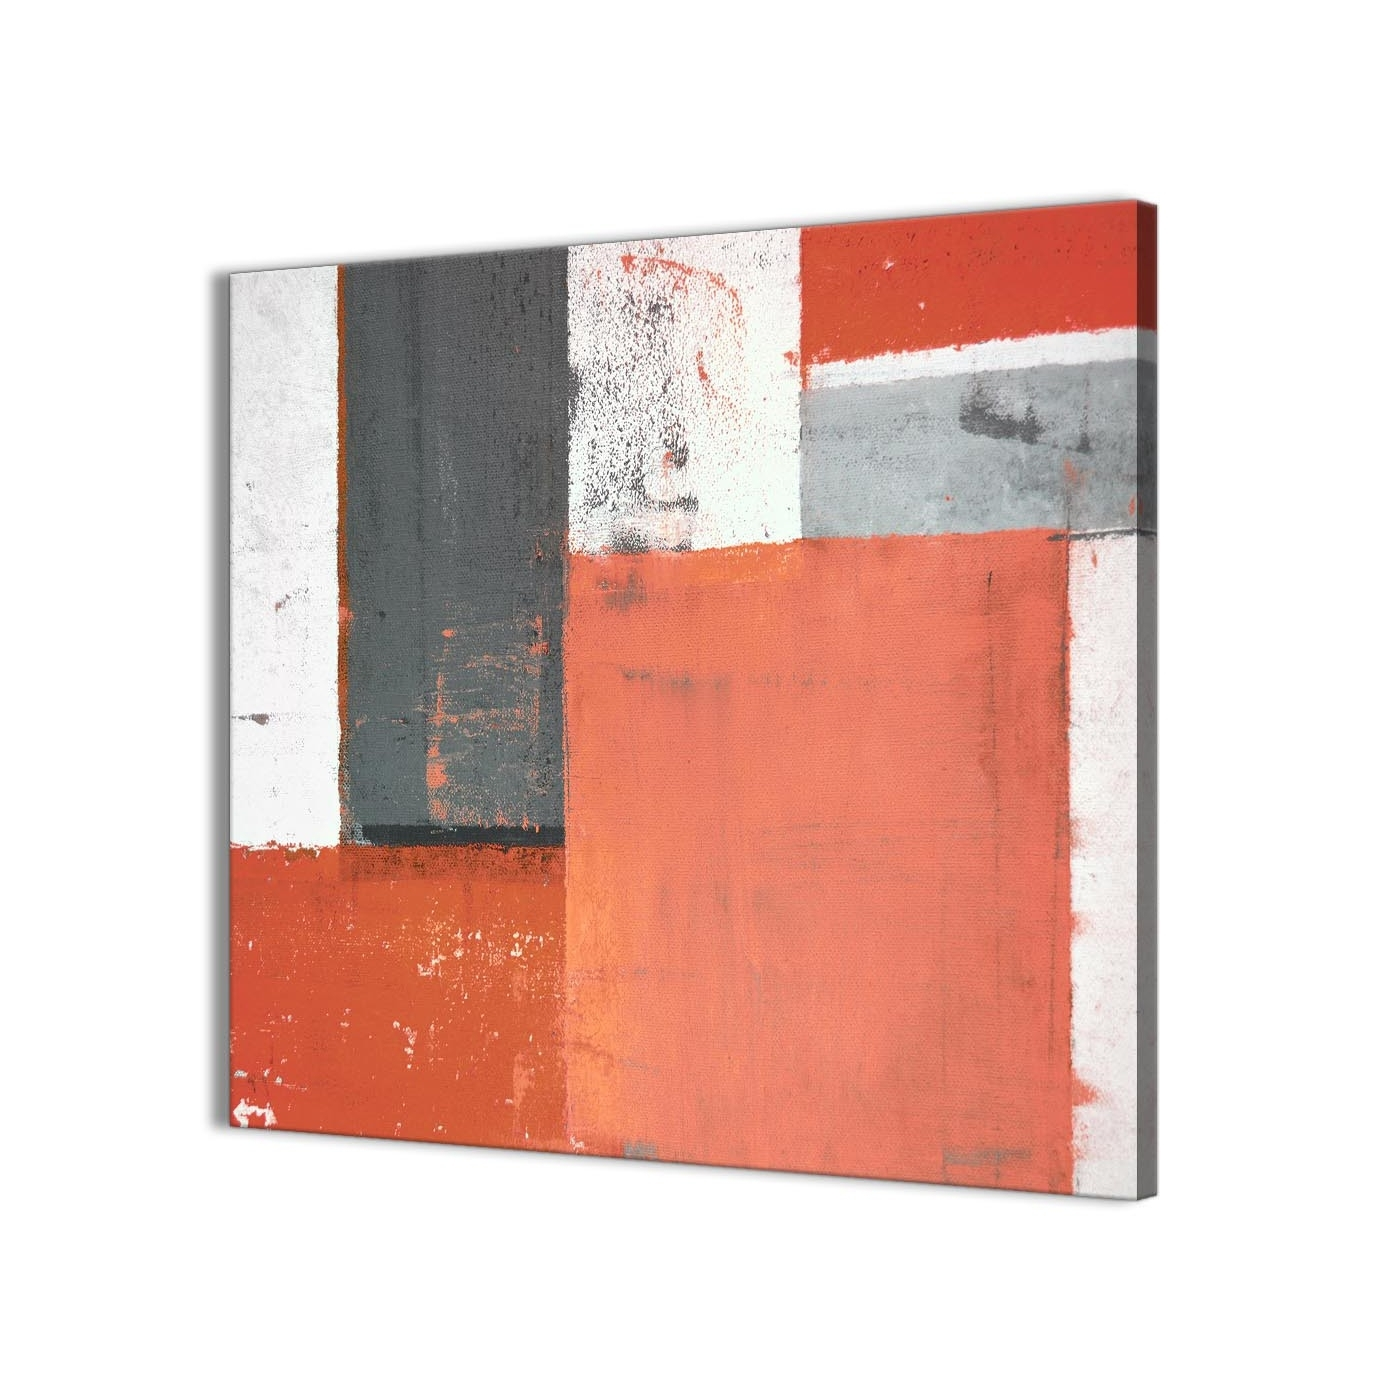 Coral Grey Abstract Painting Canvas Wall Art Pictures – Modern 49Cm For Best And Newest Modern Canvas Wall Art (View 12 of 15)